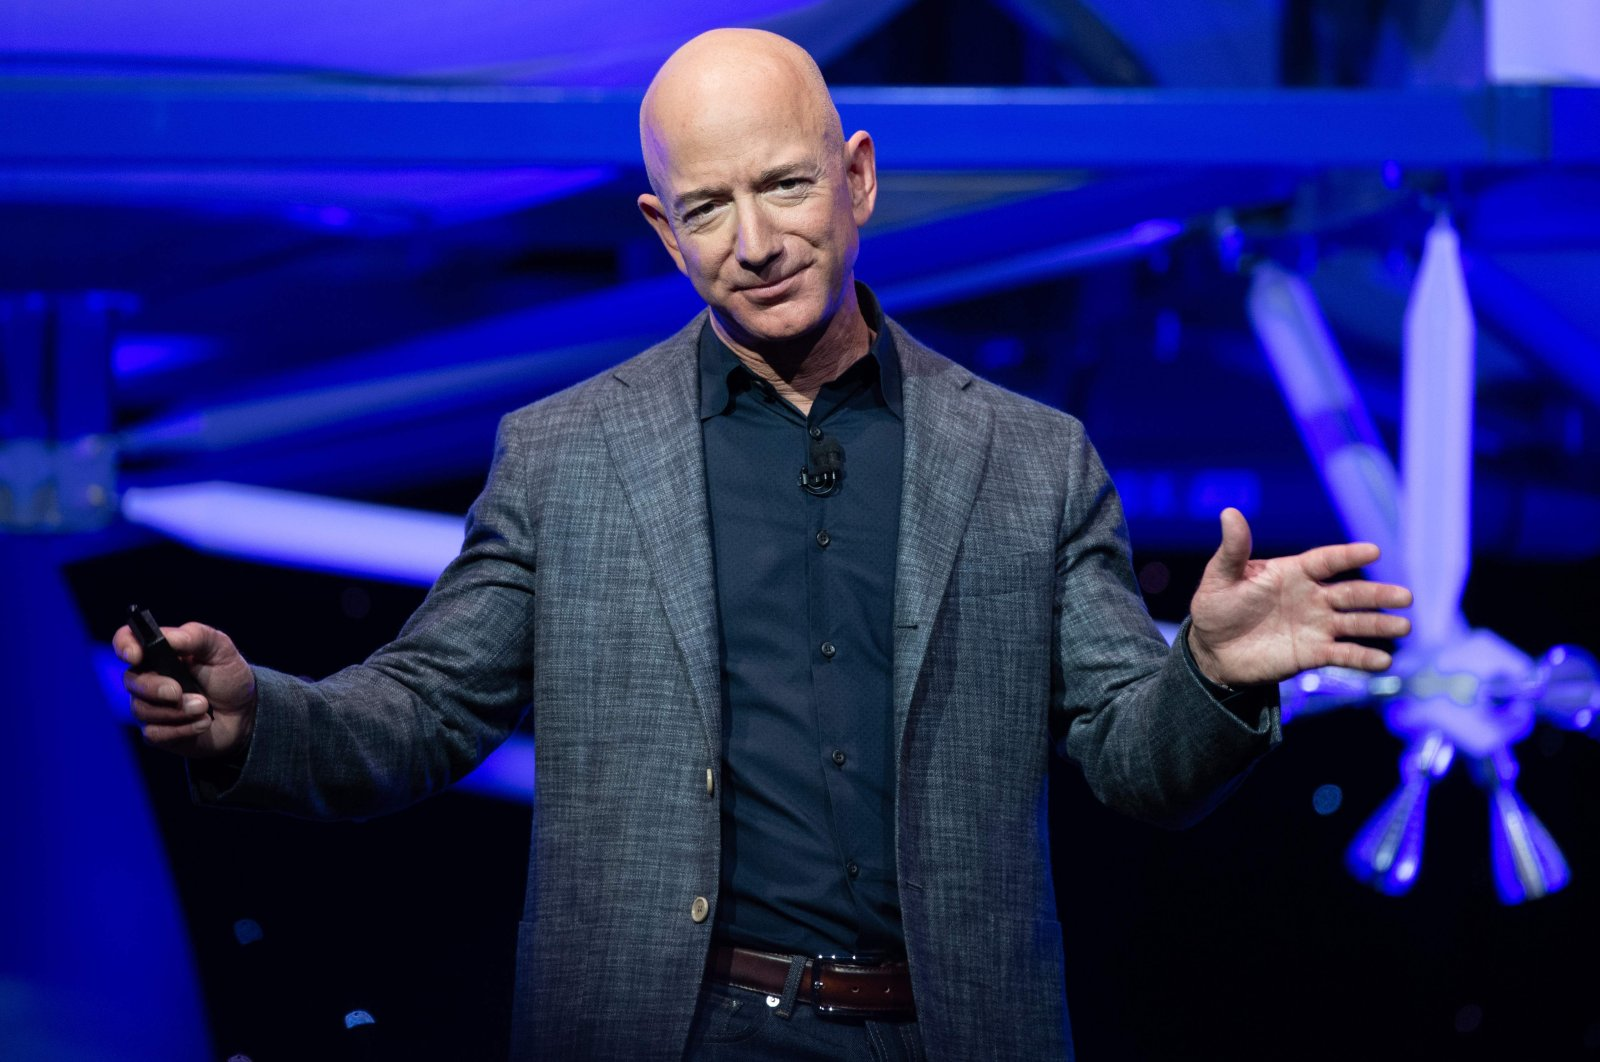 Jeff Bezos speaks at an event in Washington D.C., U.S., Thursday, May 9, 2019. (AFP Photo)